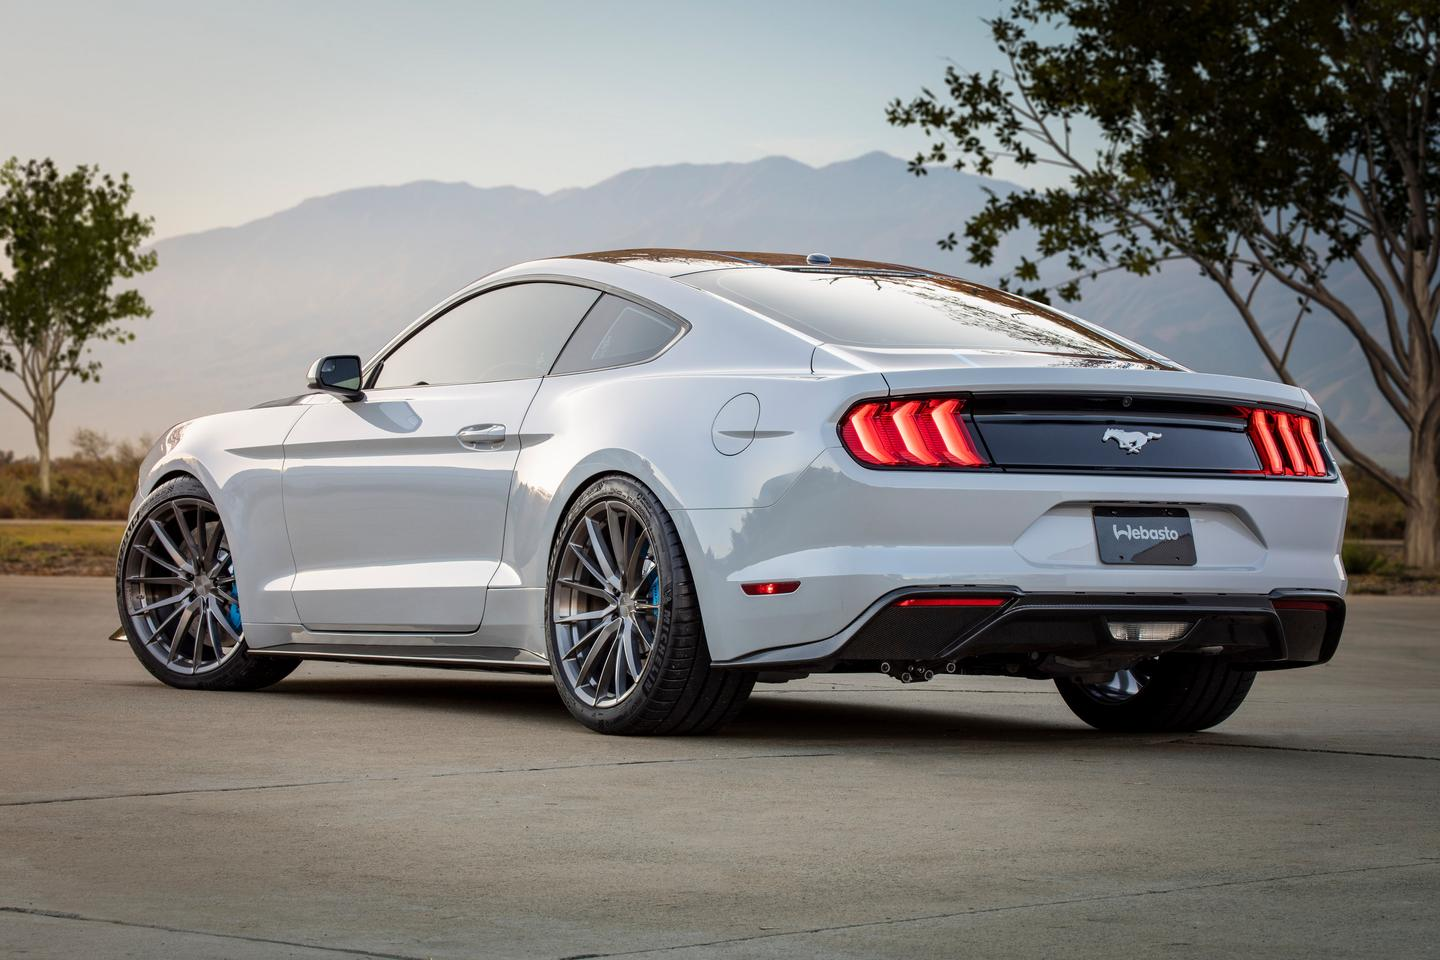 The Mustang Lithium build includes a composite rear diffuser